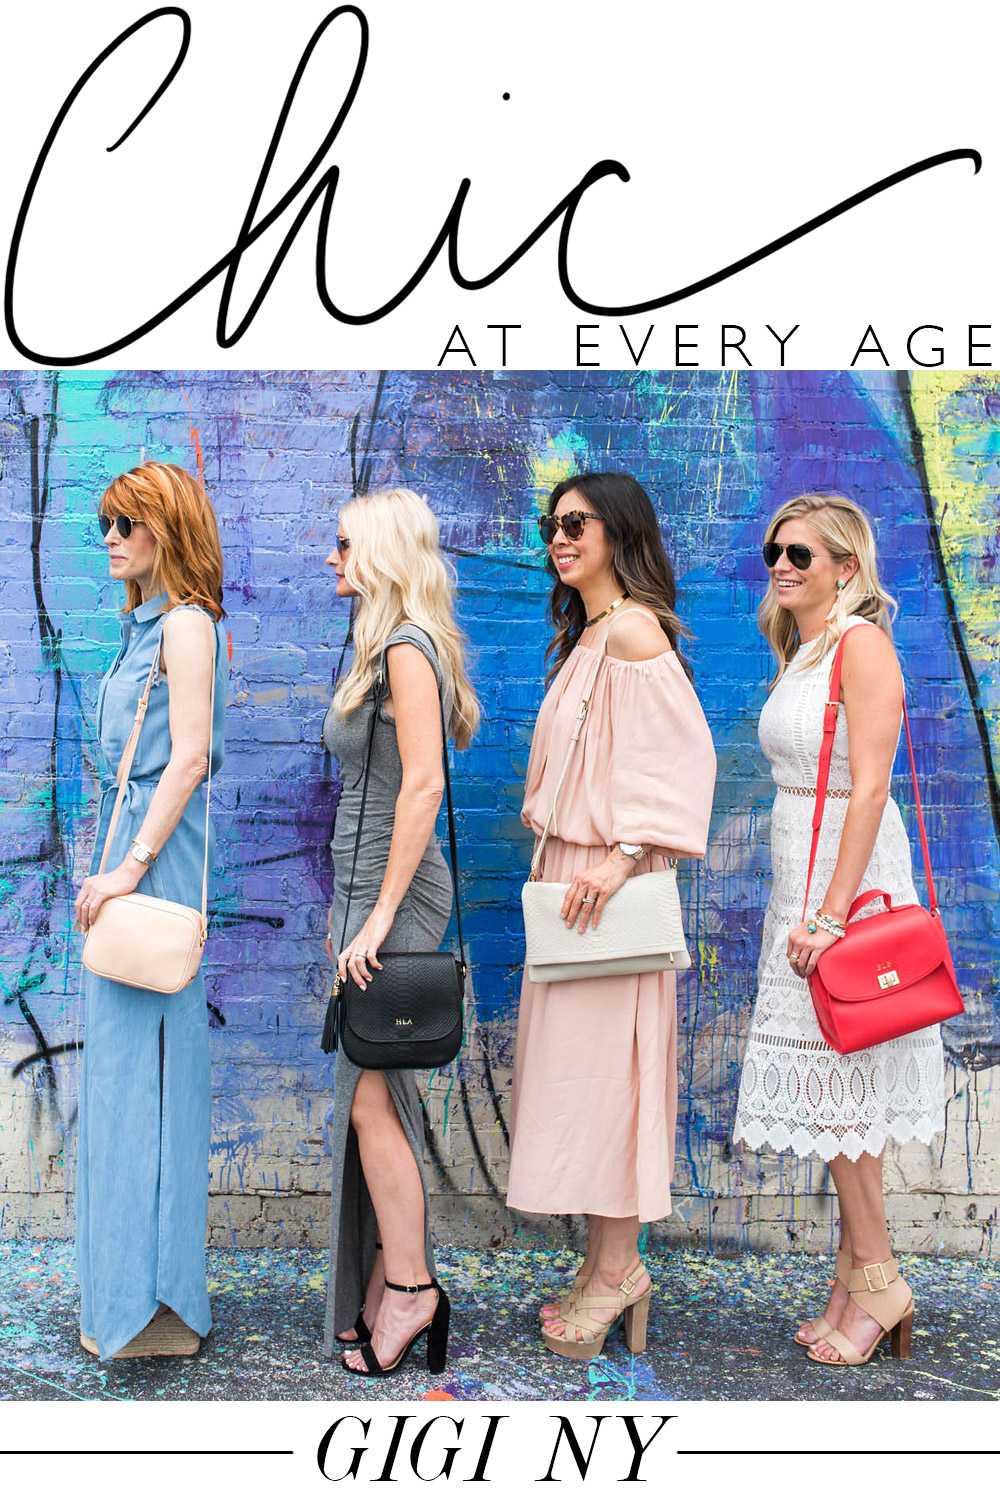 chic at every age, four bloggers wearing gigi ny crossbody bags